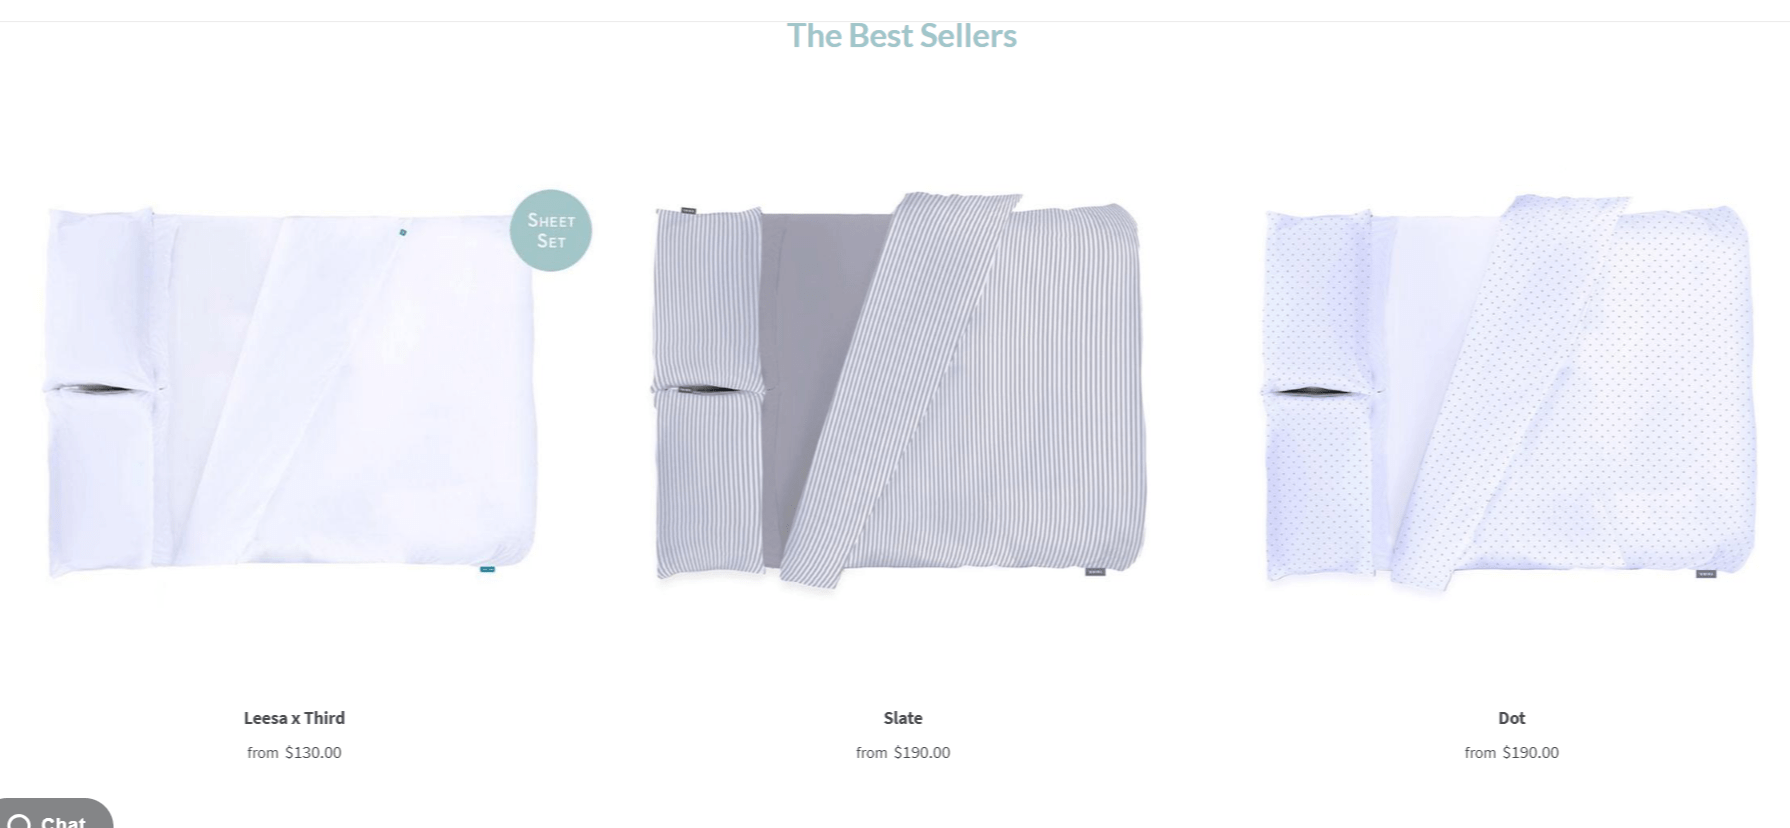 Thirdliving Coupon Codes- The Bestsellers Sheets